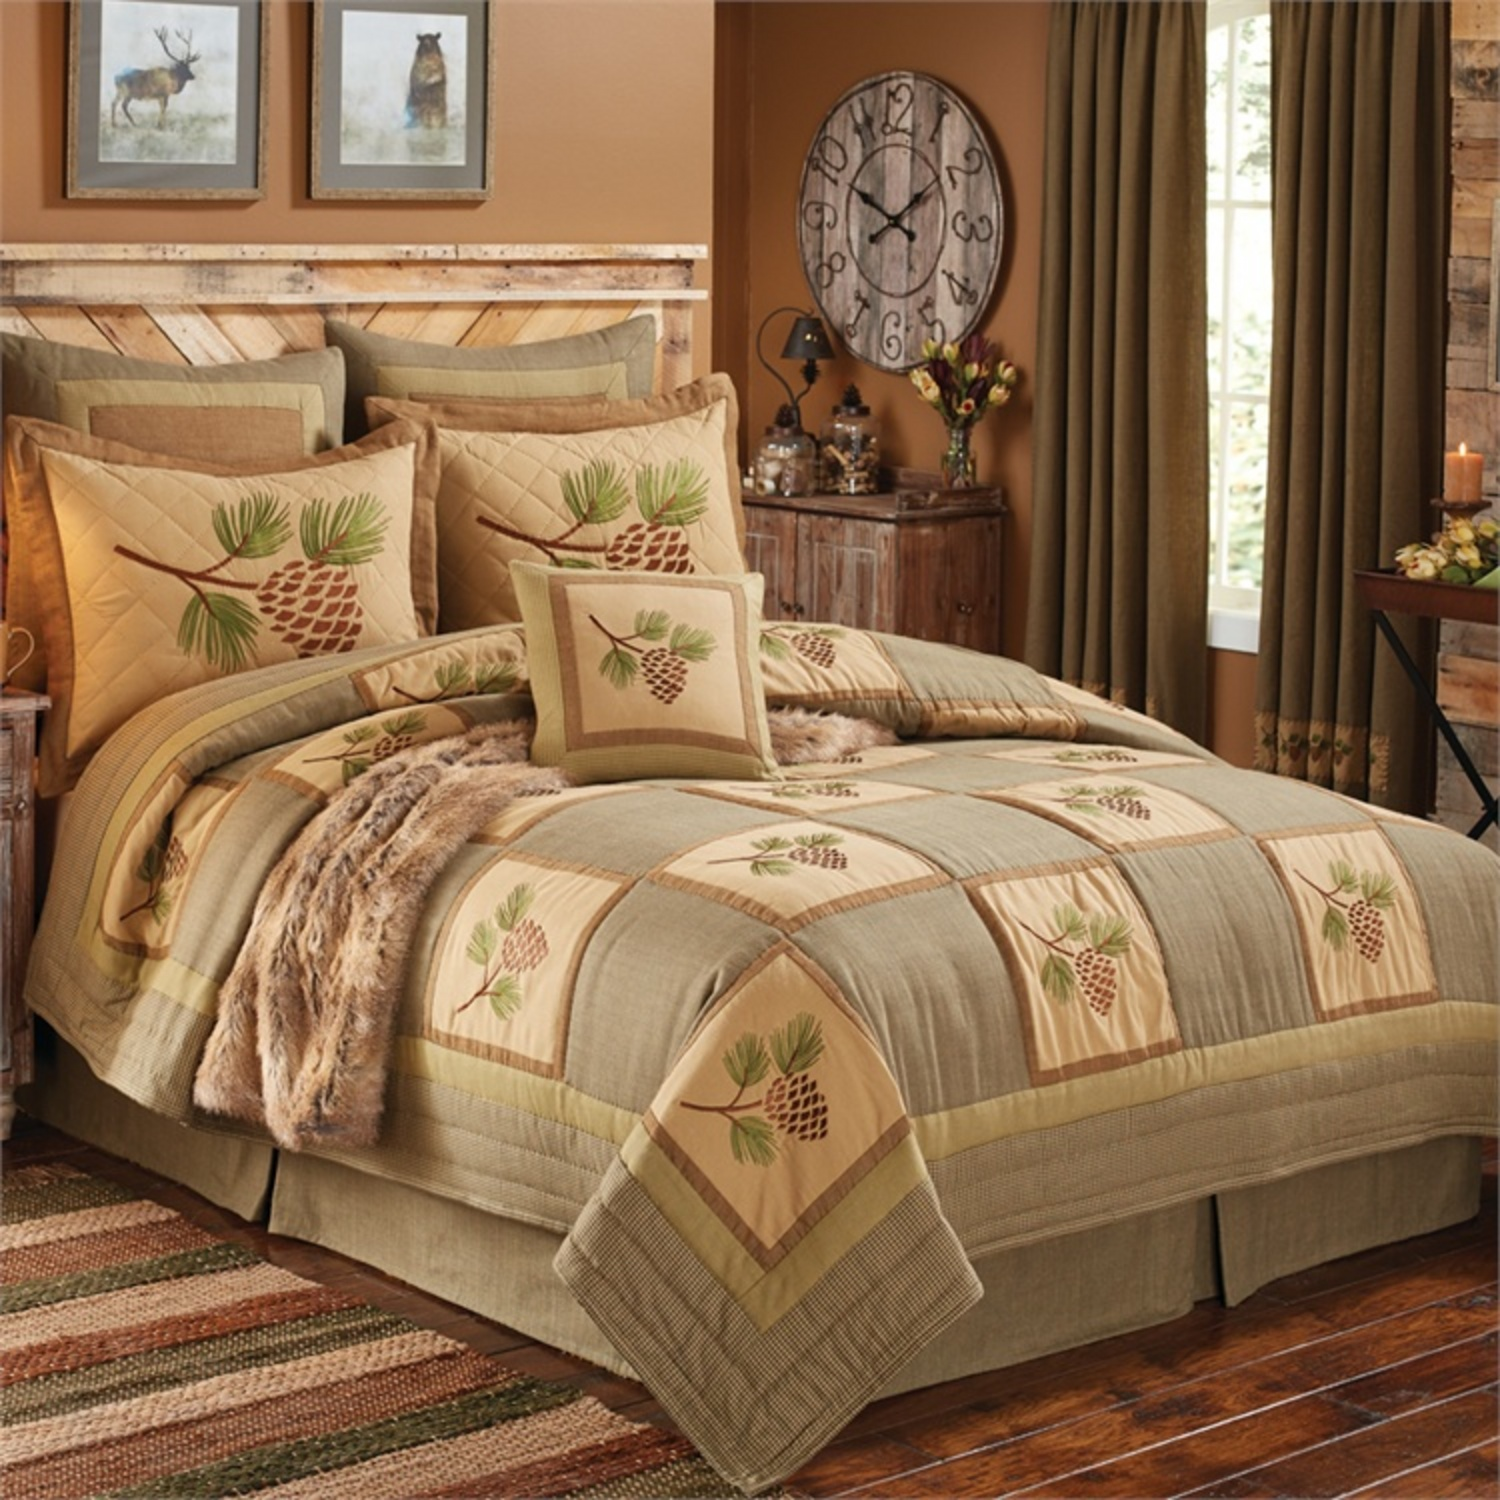 Pineview Park Designs Lodge Bedding